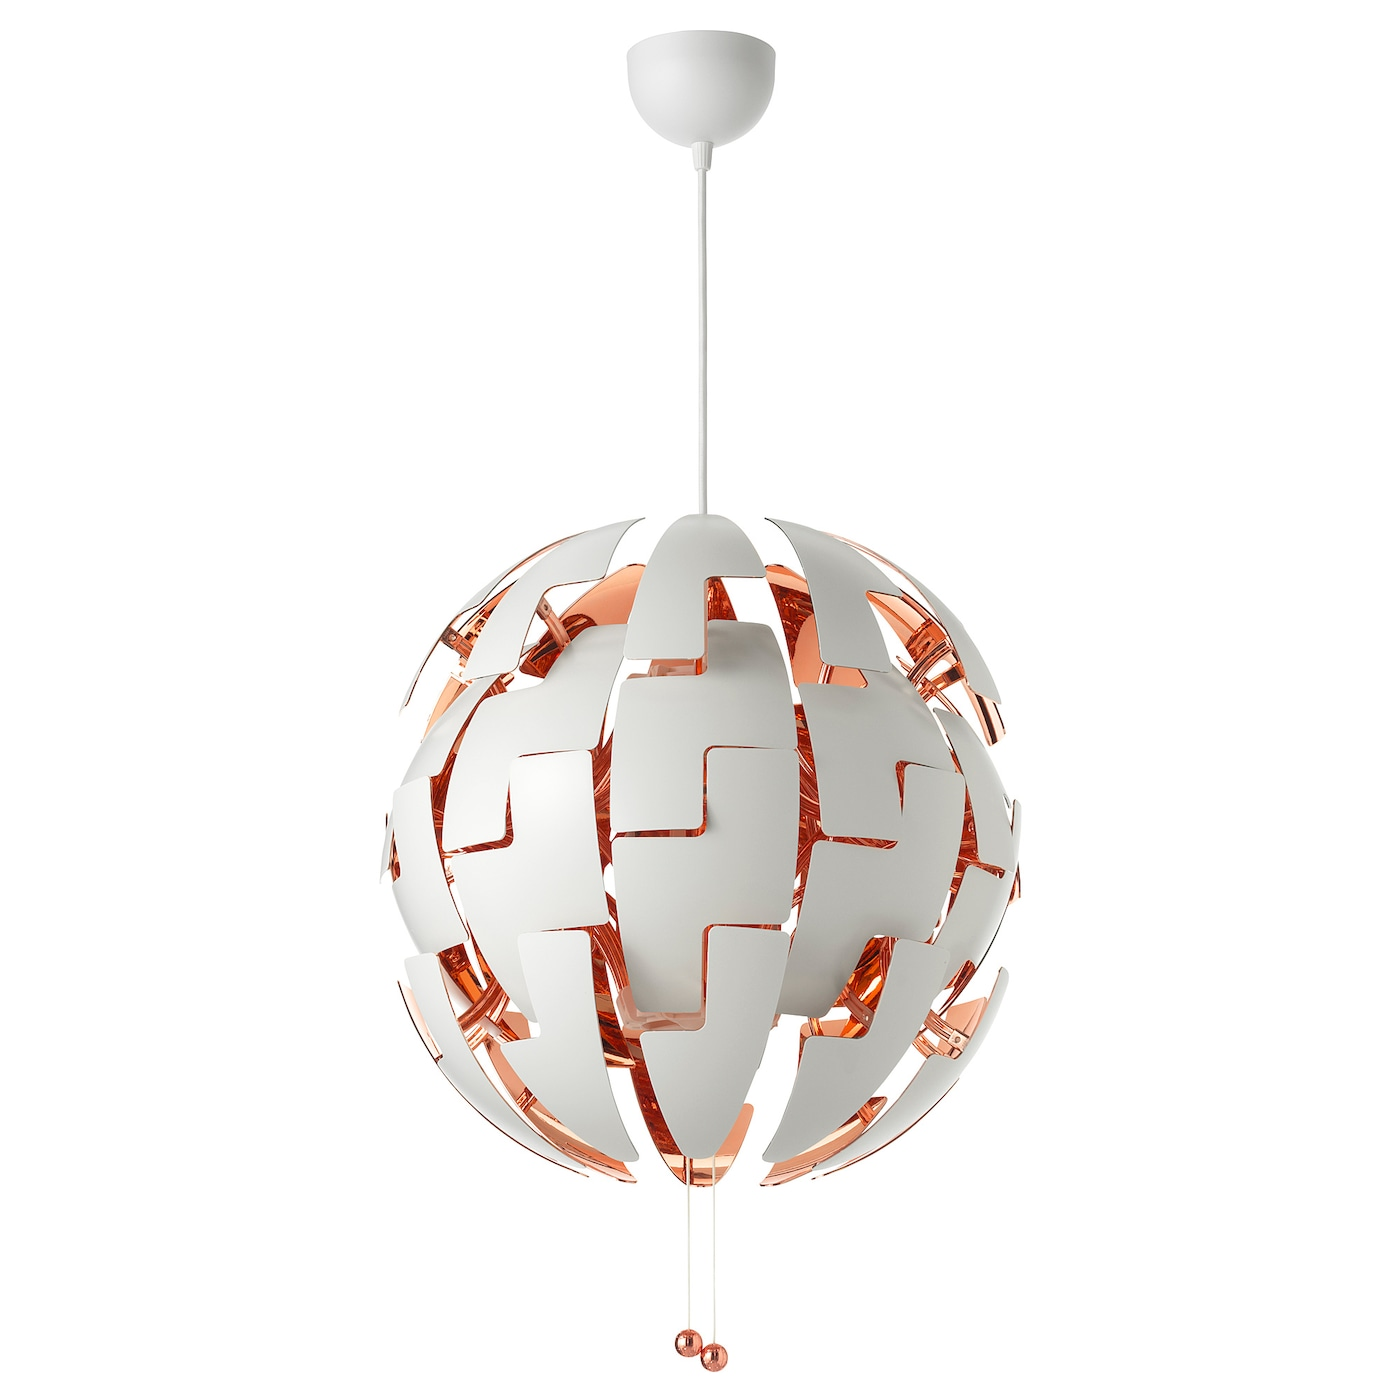 Ikea Ps 2014 Pendant Lamp White Copper Colour 52 Cm Ikea